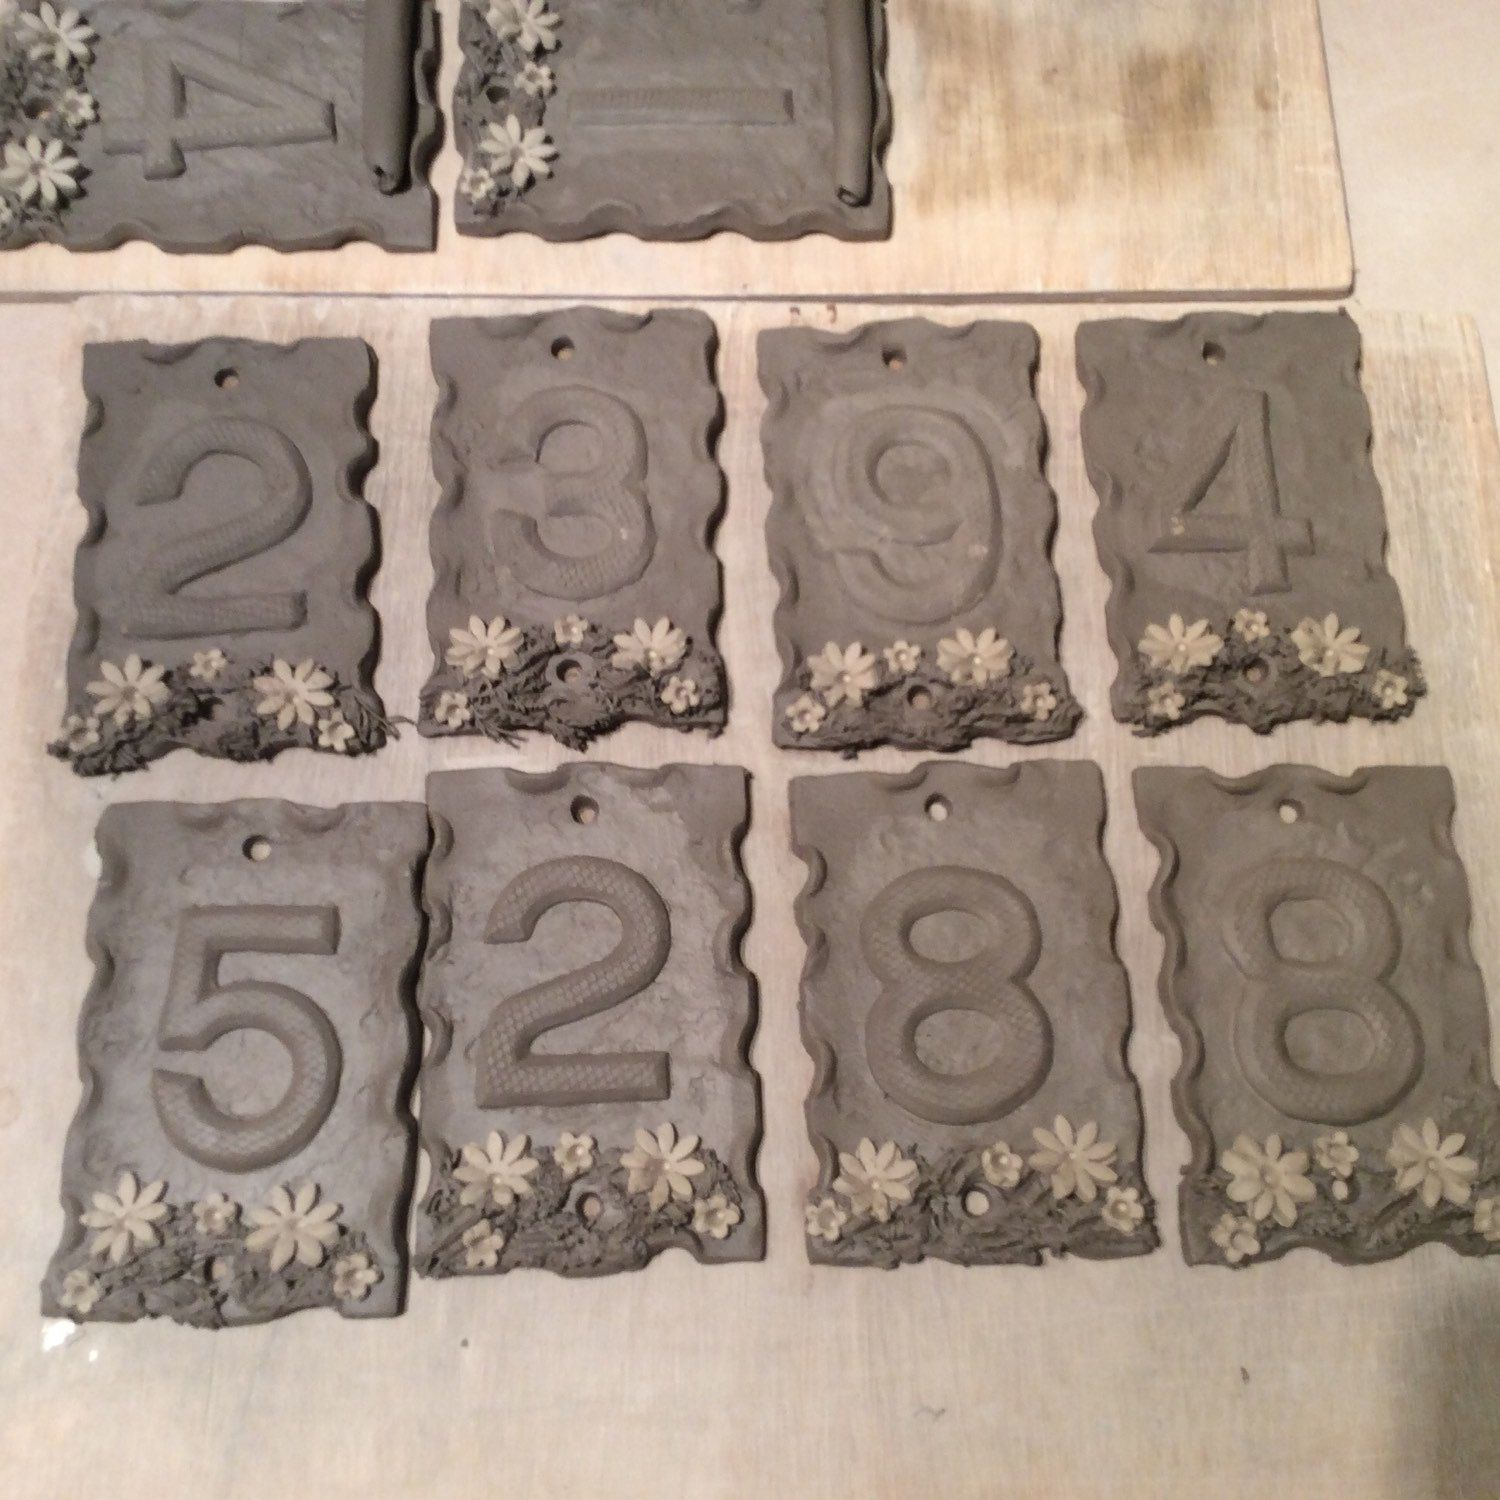 House numbers ceramic door number plaque FROST PROOF 5 5 x 3 5